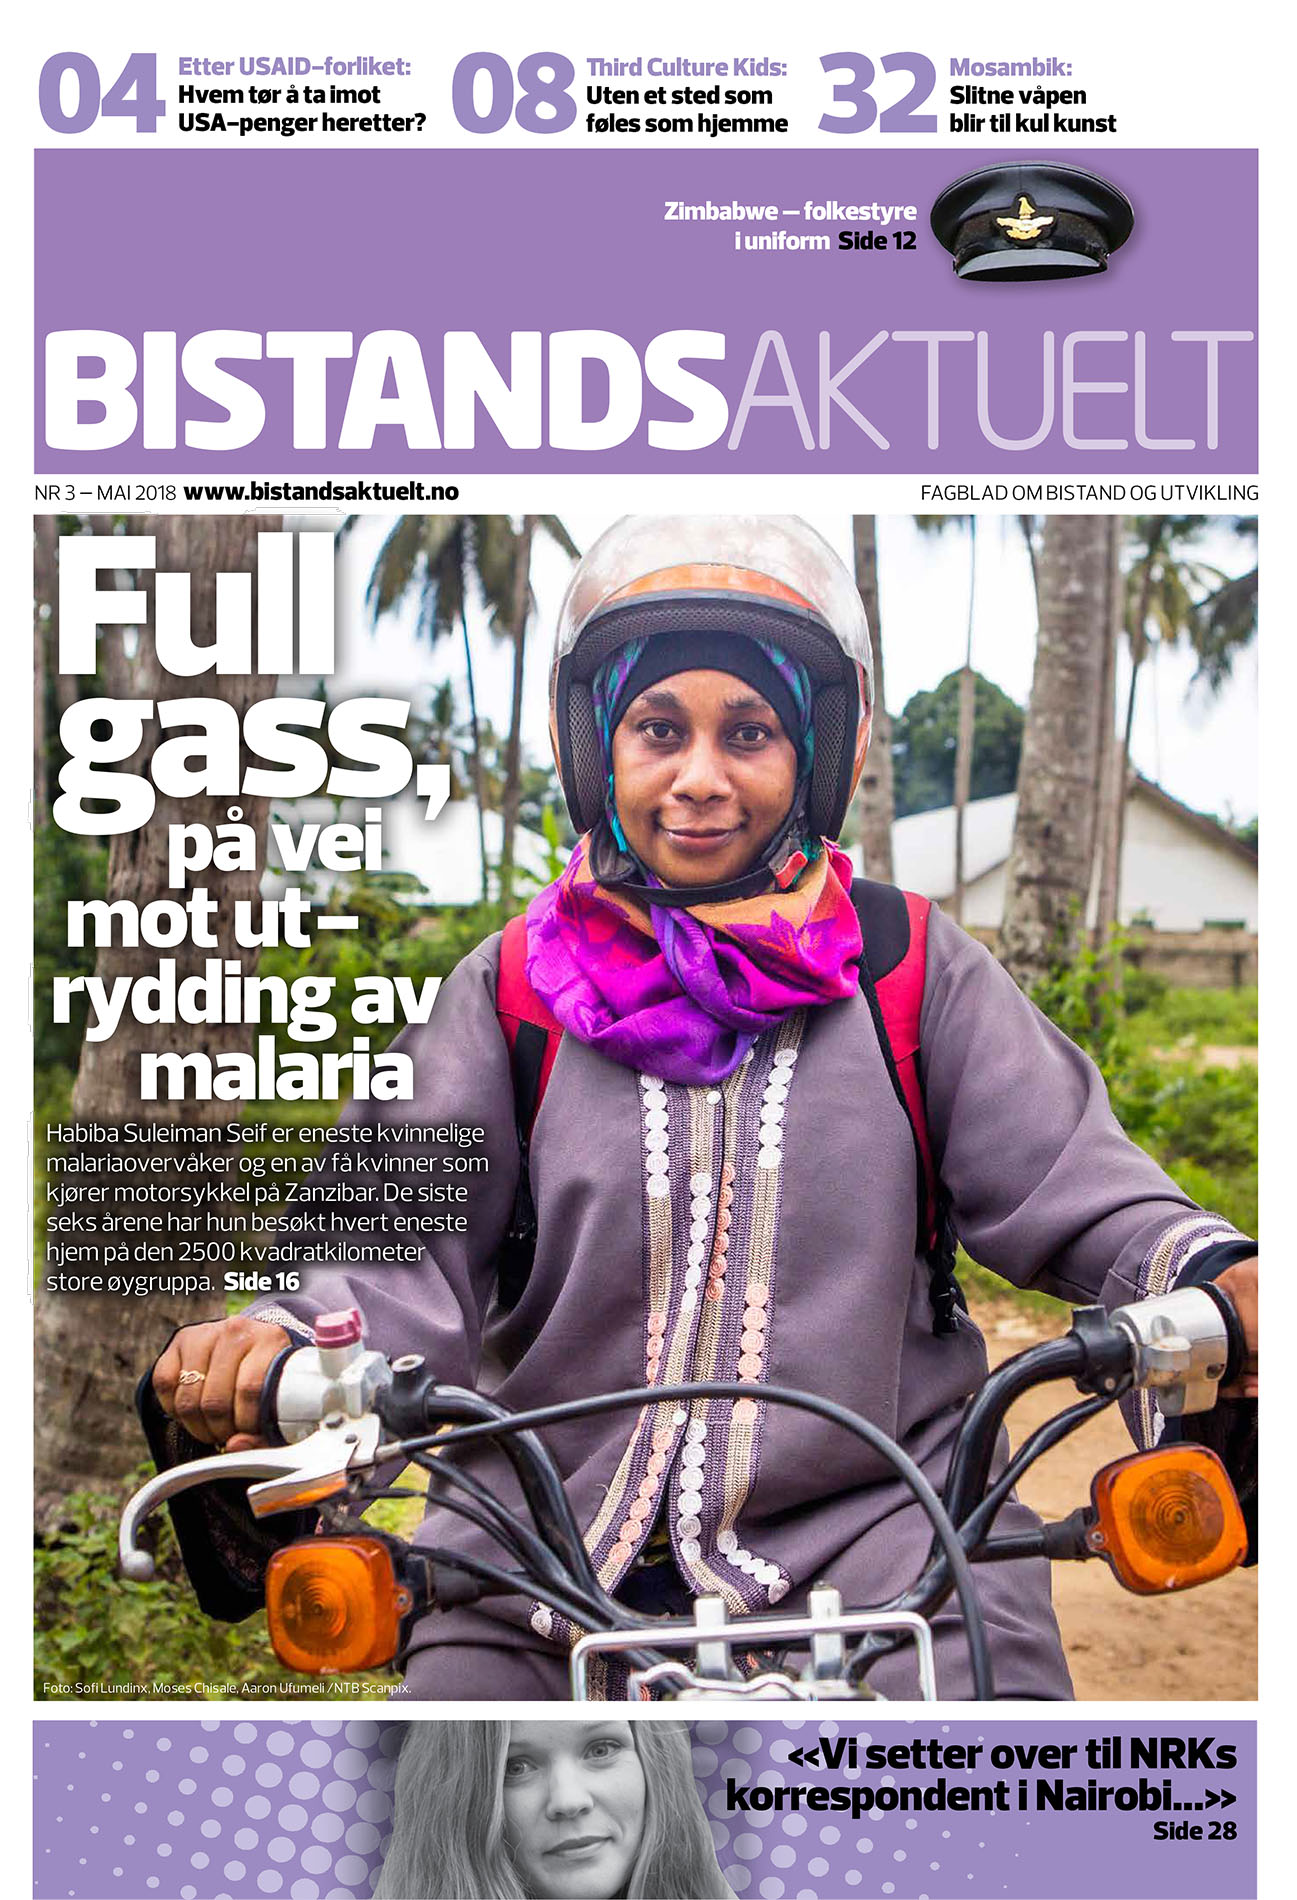 Cover story in Bistandsaktuelt: Zanzibar´s fight to eliminate Malaria